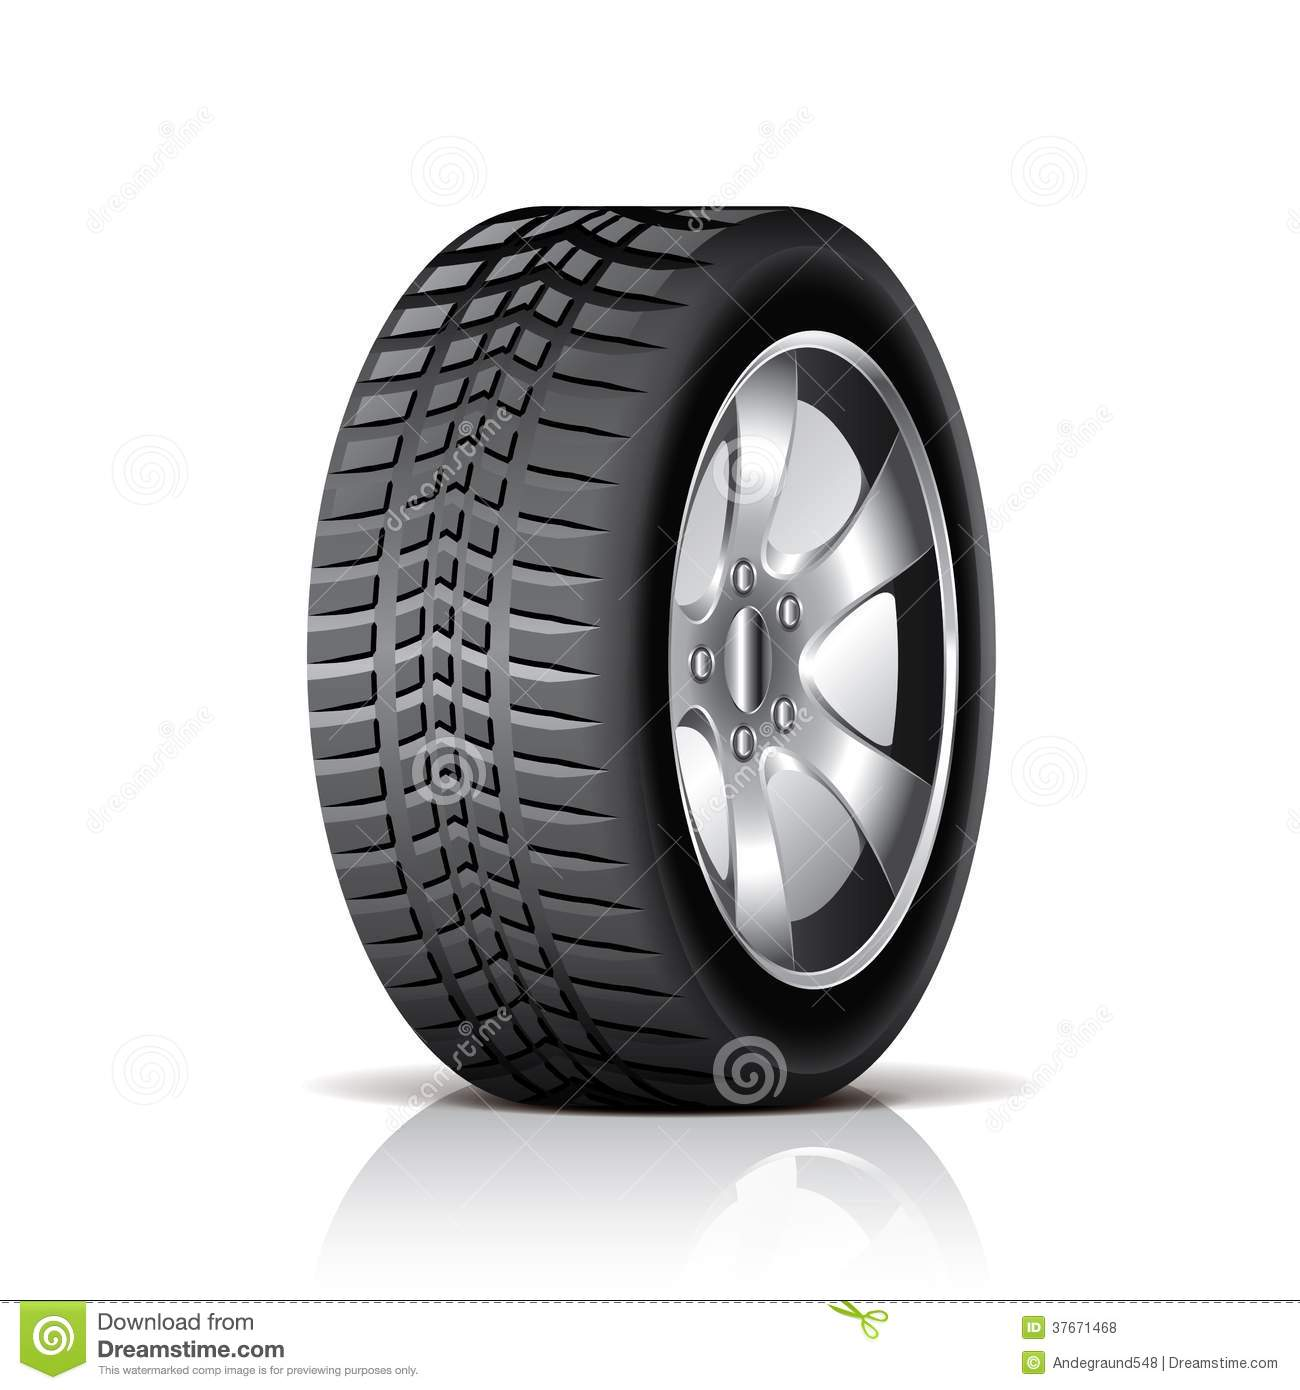 Car Tire Isolated On White Vector Stock Vector - Illustration of ... for Racing Tire Vector  17lplyp